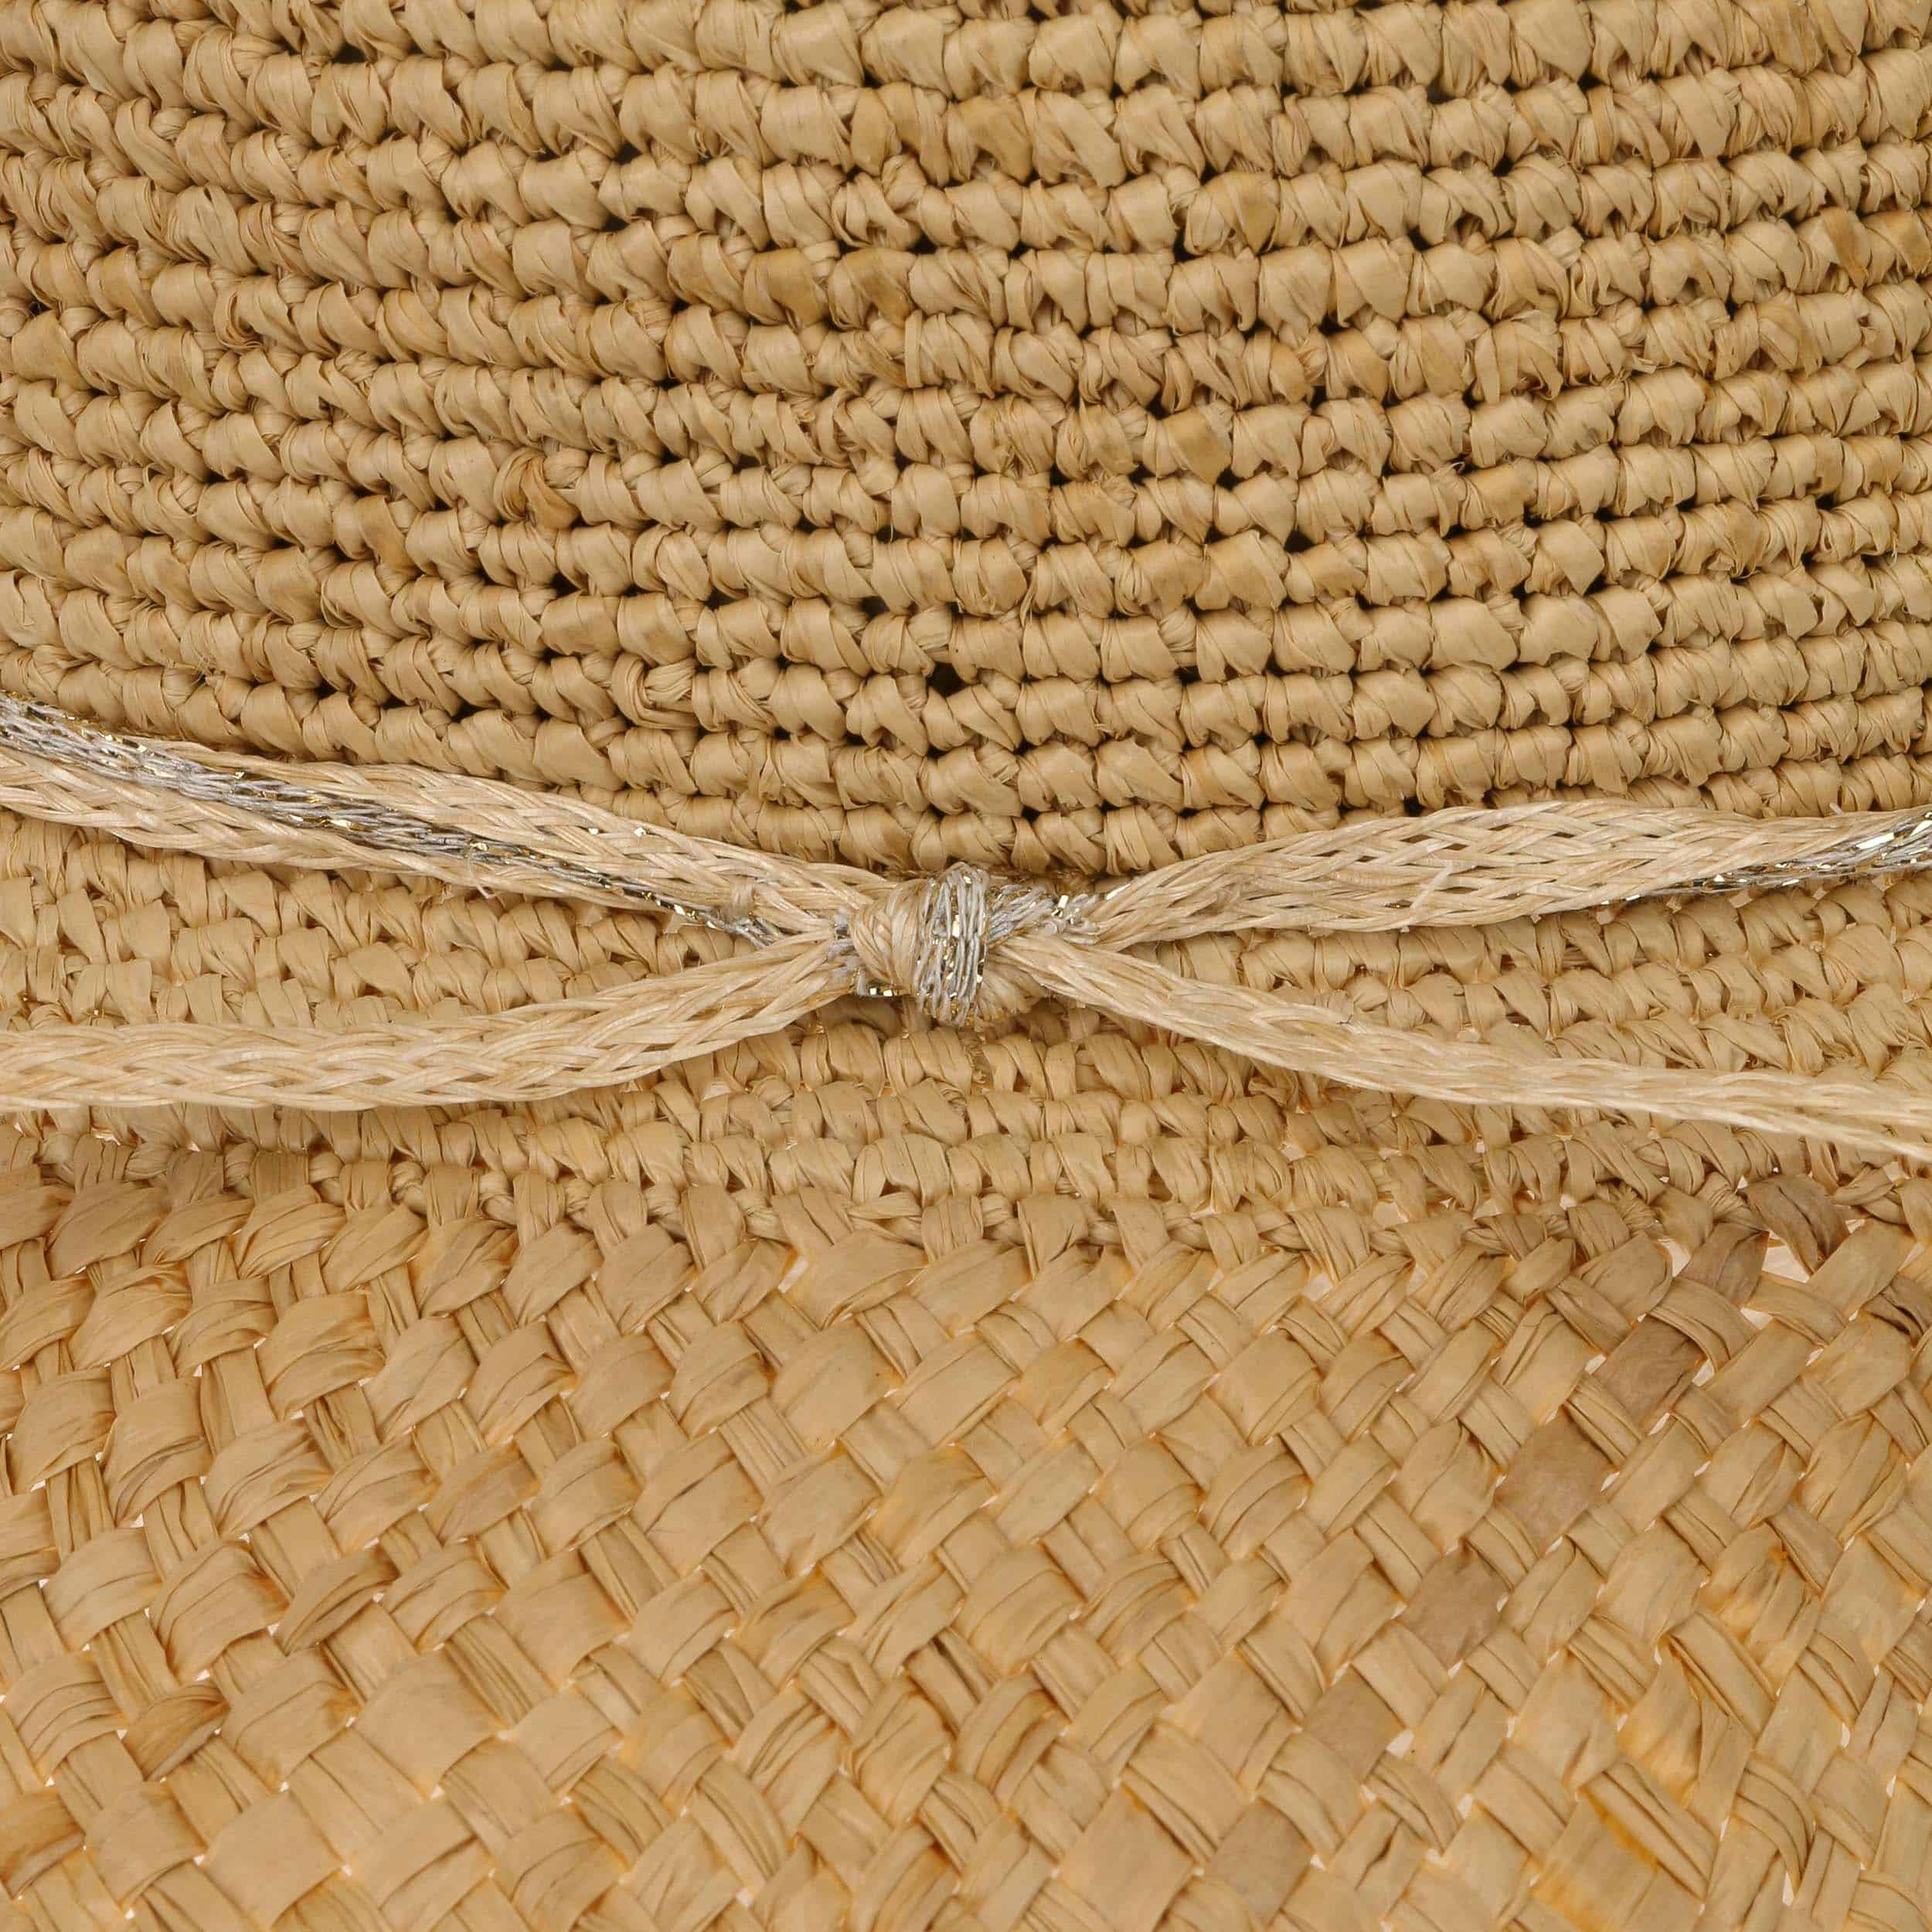 ... Raffia Straw XXL Brim Floppy Hat by Lierys - nature 3 ... eea7e16bdc84